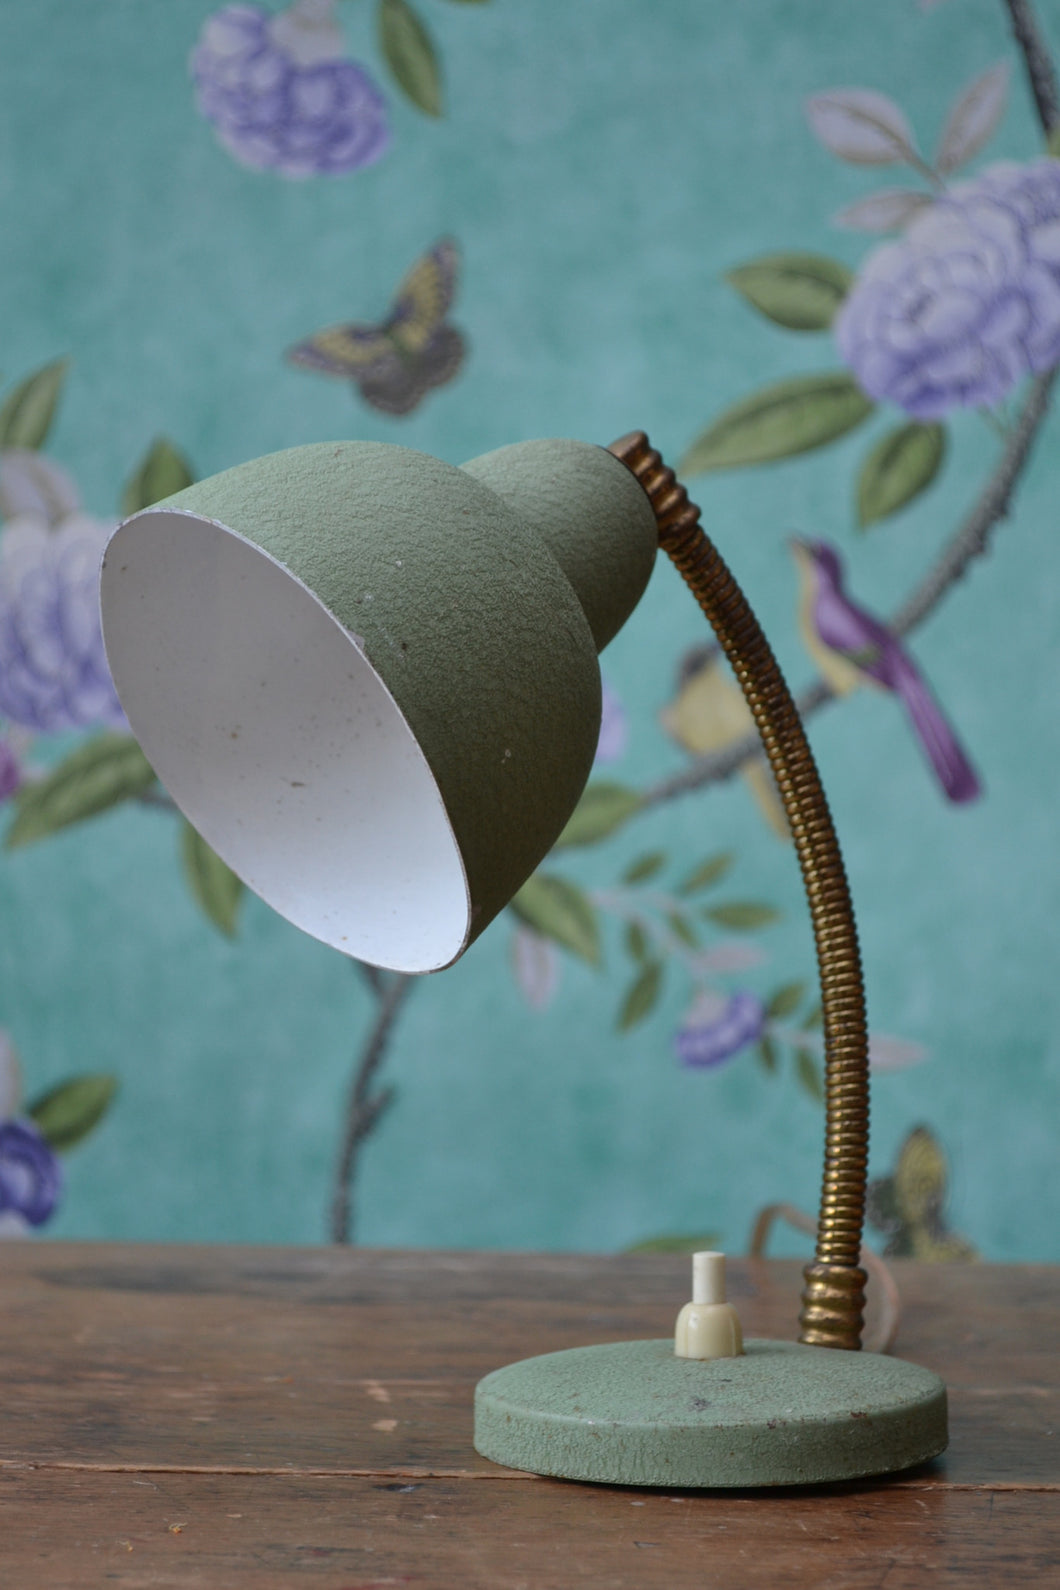 French Vintage Desk Lamp - 1950's - SOLD OUT